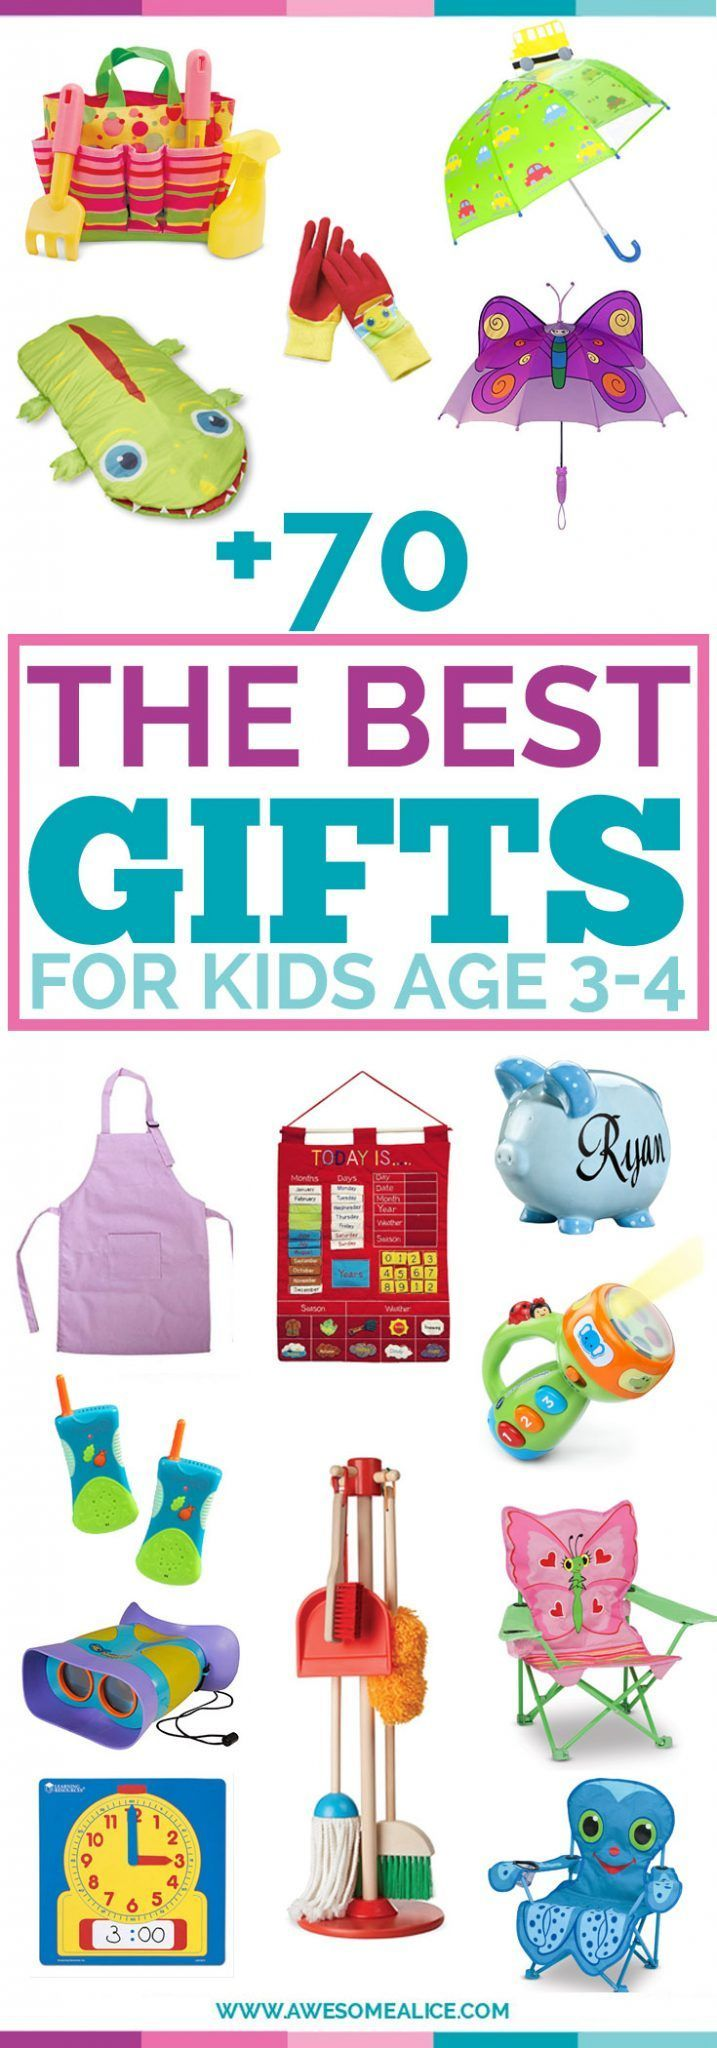 Non-Toy Gift Guide For Kids | Christmas Gifts For Three Year Olds | Perfect Christmas Gift For Four-Year-Olds | The Best Kids Gear | The Best Baby Music Toys | Children's Christmas Gift Guide | The Best Kids Gift Guide | Holiday Gifts For Kids | #giftguide #kids #non-toys #musthaveproducts #bestproducts #ChristmasGifts | www.awesomealice.com